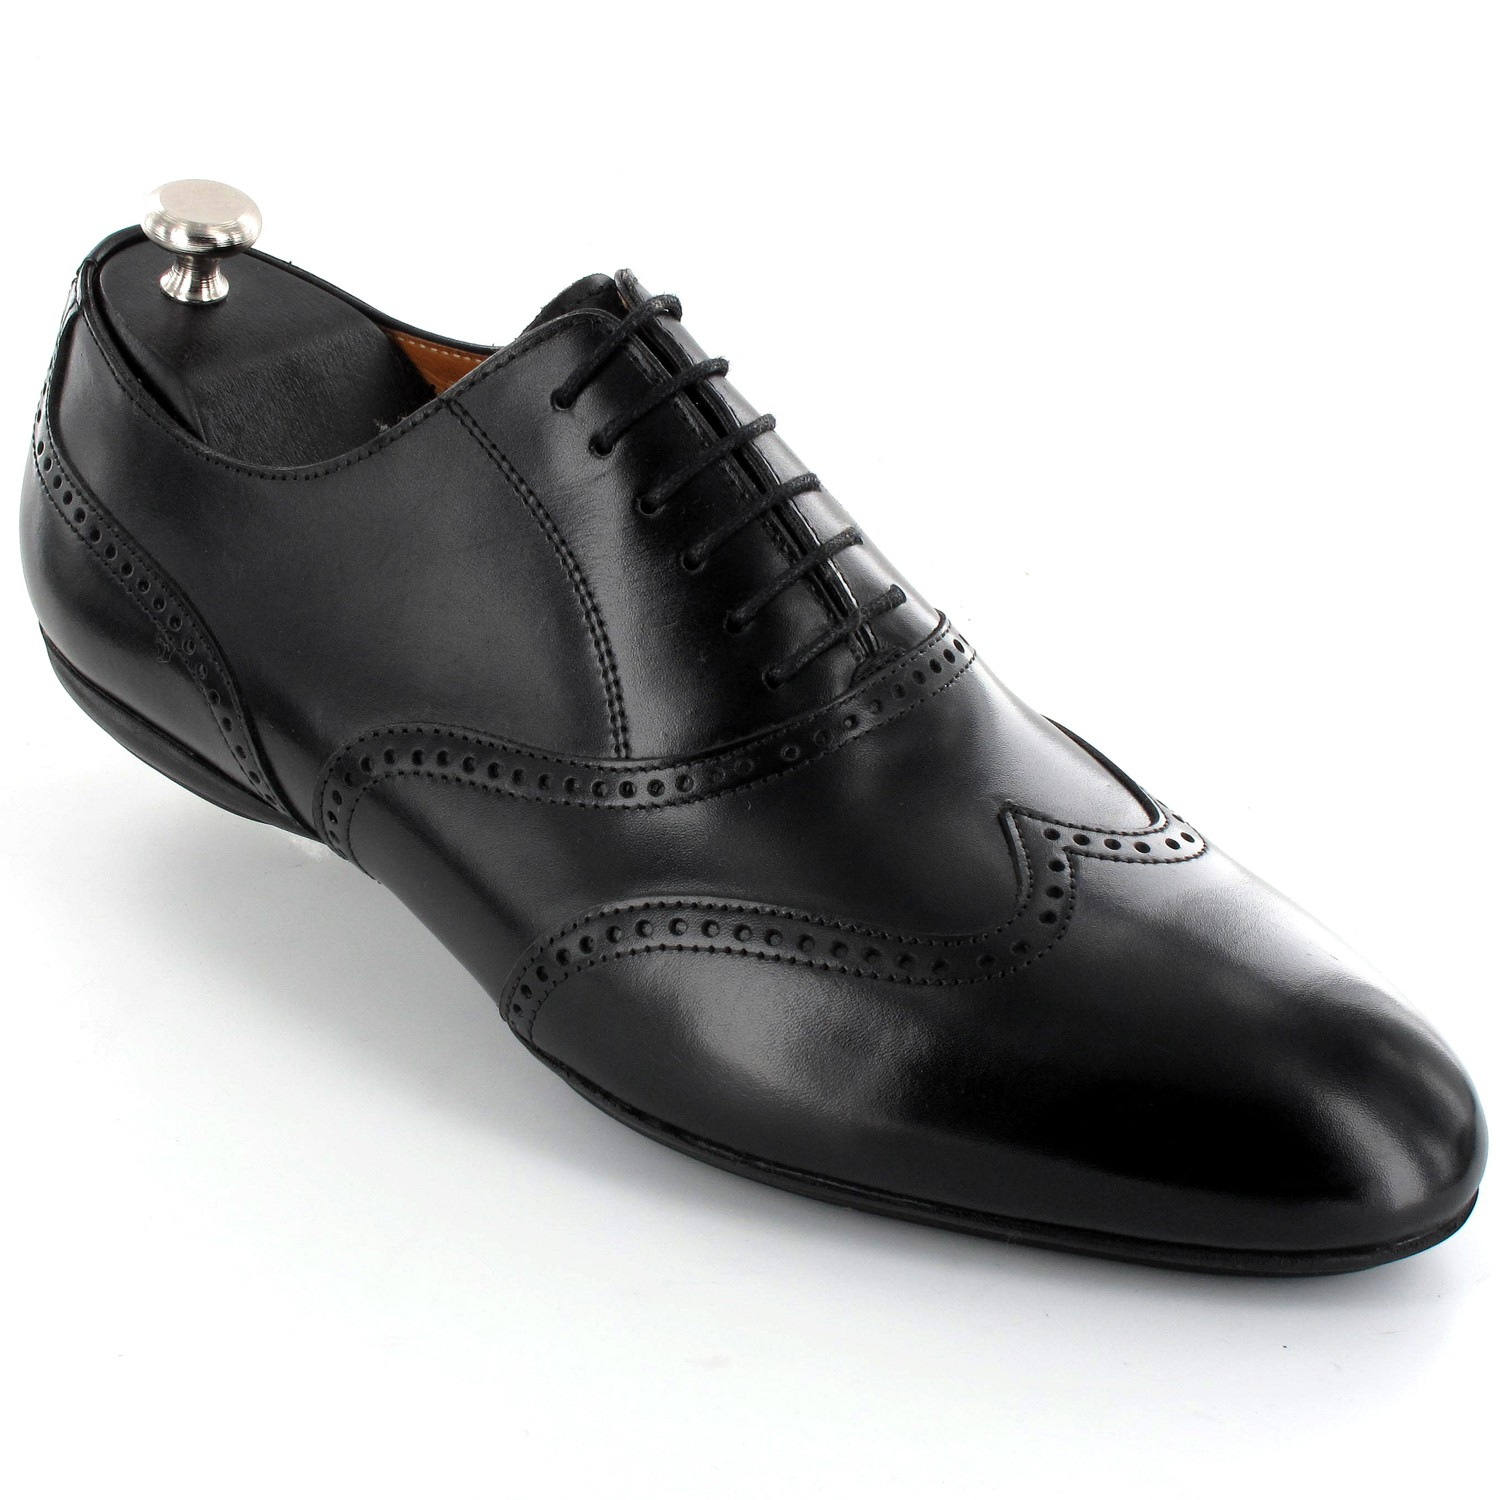 chaussure bottine homme lacets cuir noir zino chemise homme chaussures homme. Black Bedroom Furniture Sets. Home Design Ideas